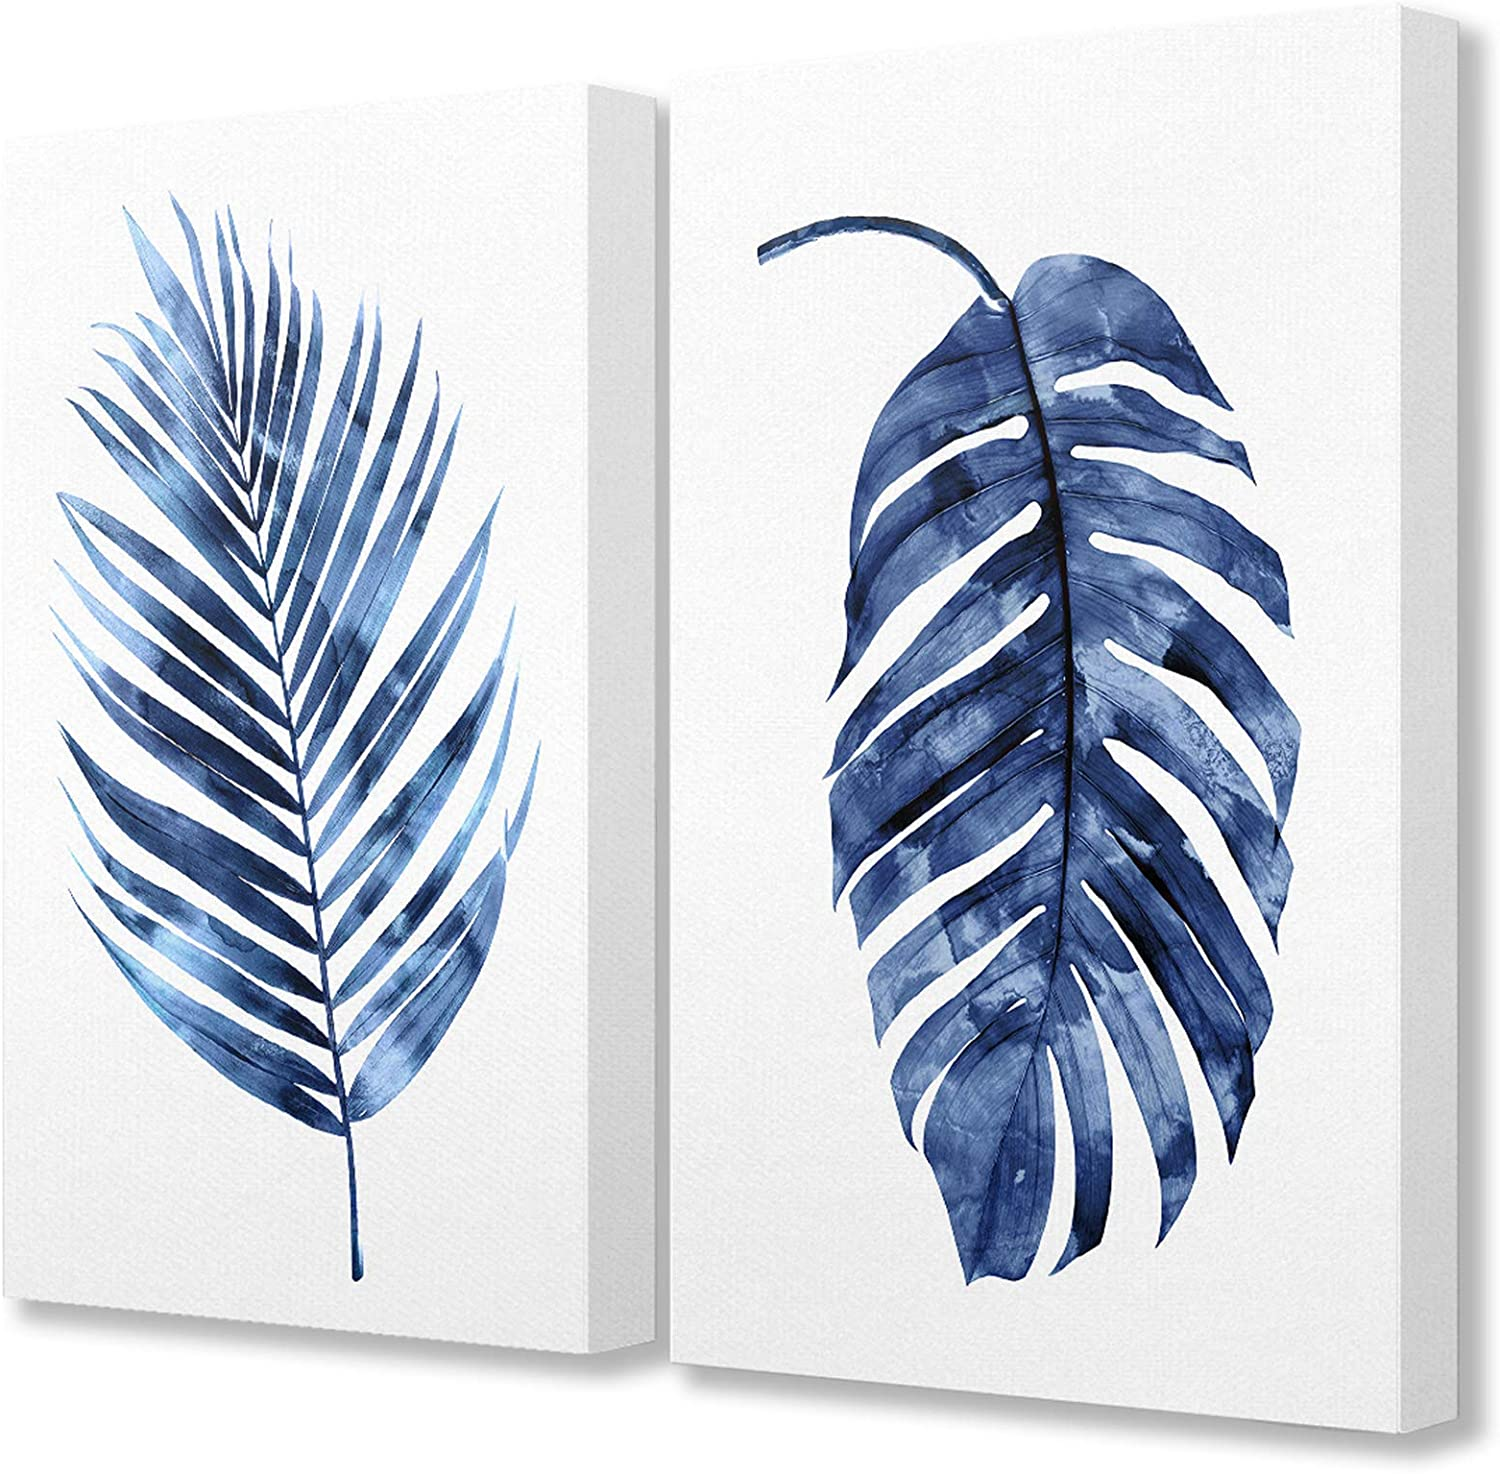 The Stupell Home Décor Collection Indigo Dark Blue Watercolor Palm Frond Plant Painting Duo Stretched Canvas Wall Art, 16 x 20, Multi-Color